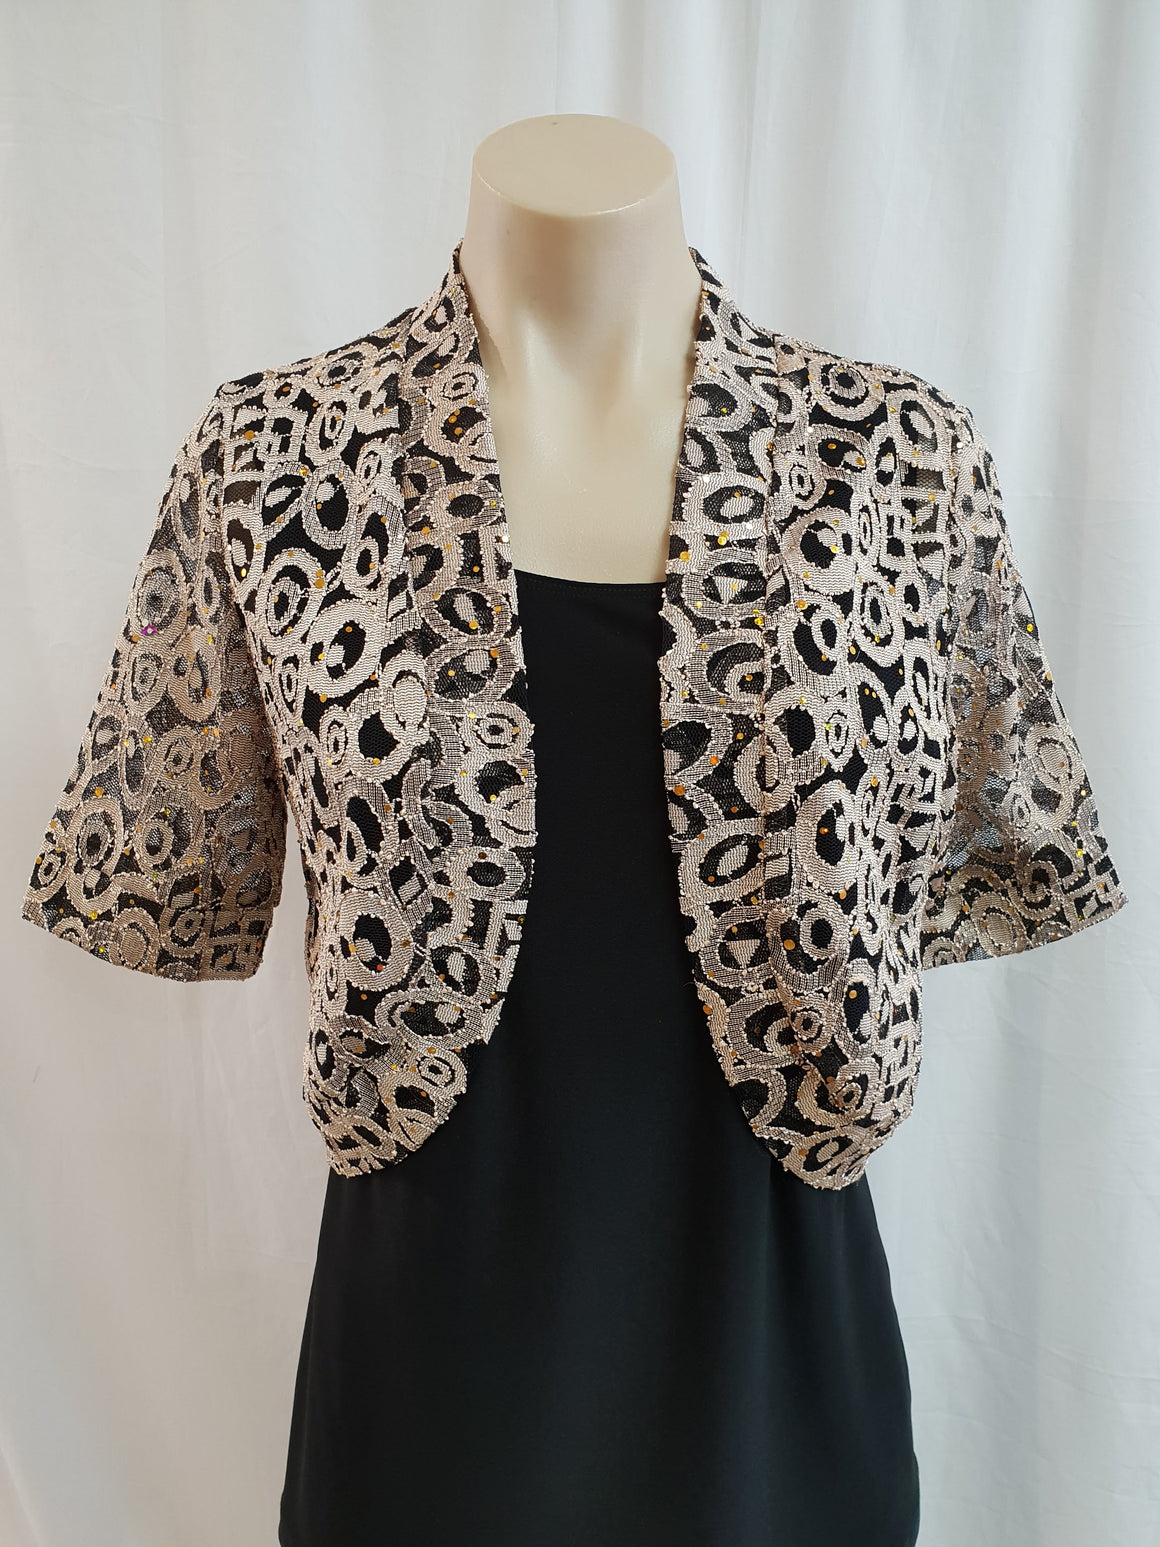 Yesadress Gold/Black Lace Jacket